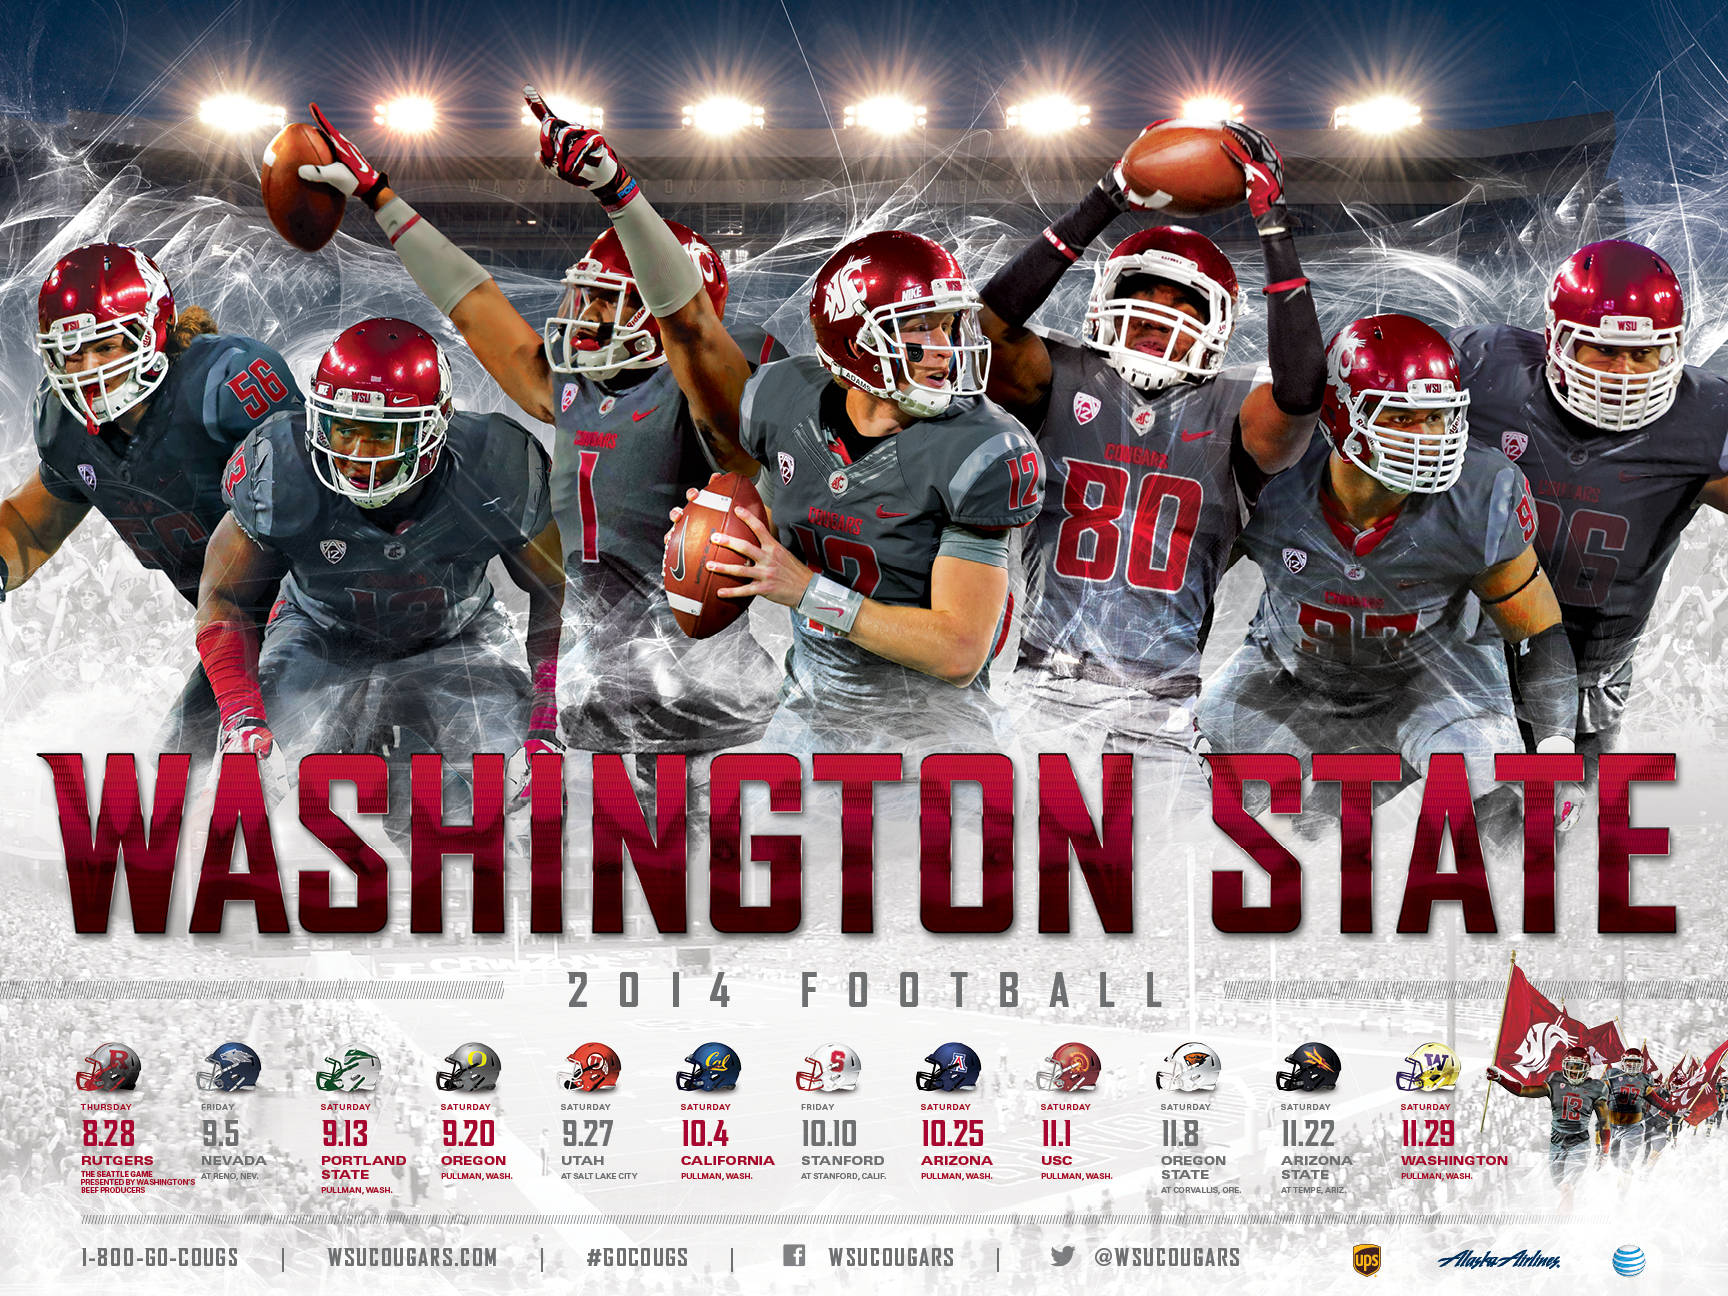 washington state university jamaica sports track field football. ← WSU Football Wallpaper